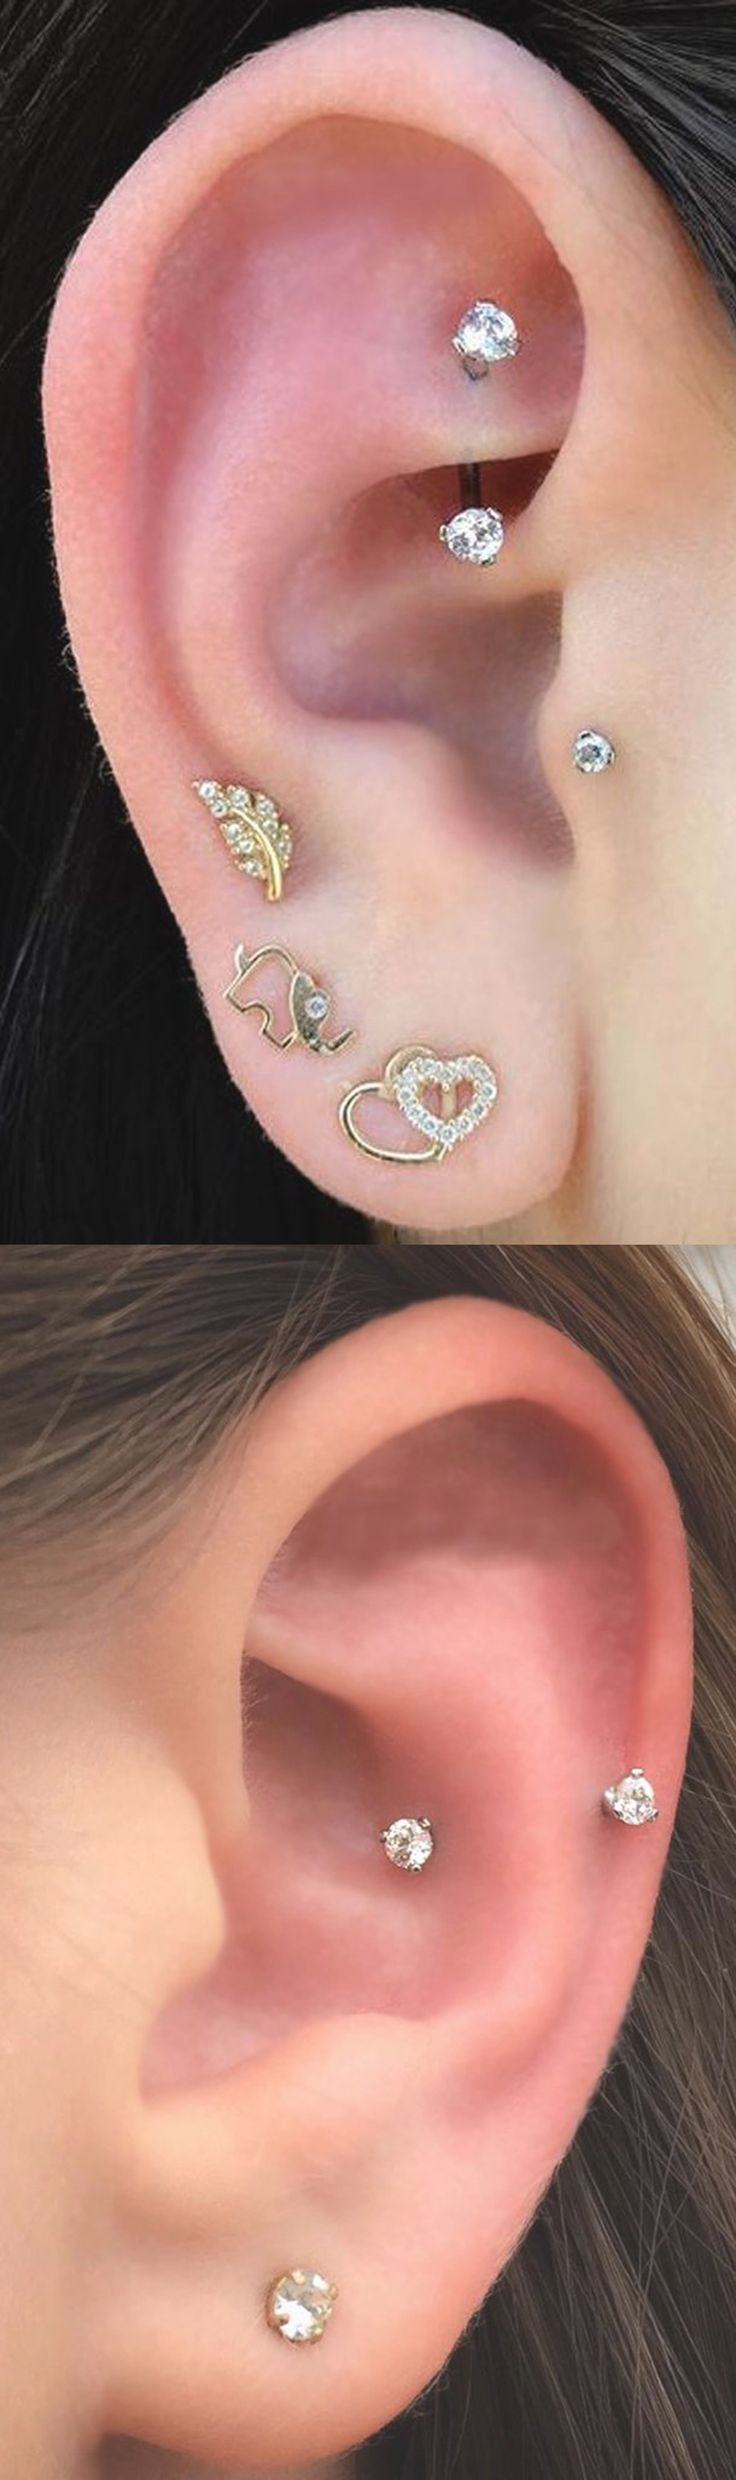 Piercing ideas for females   best Peircings images on Pinterest  Piercing ideas Tattoo ideas